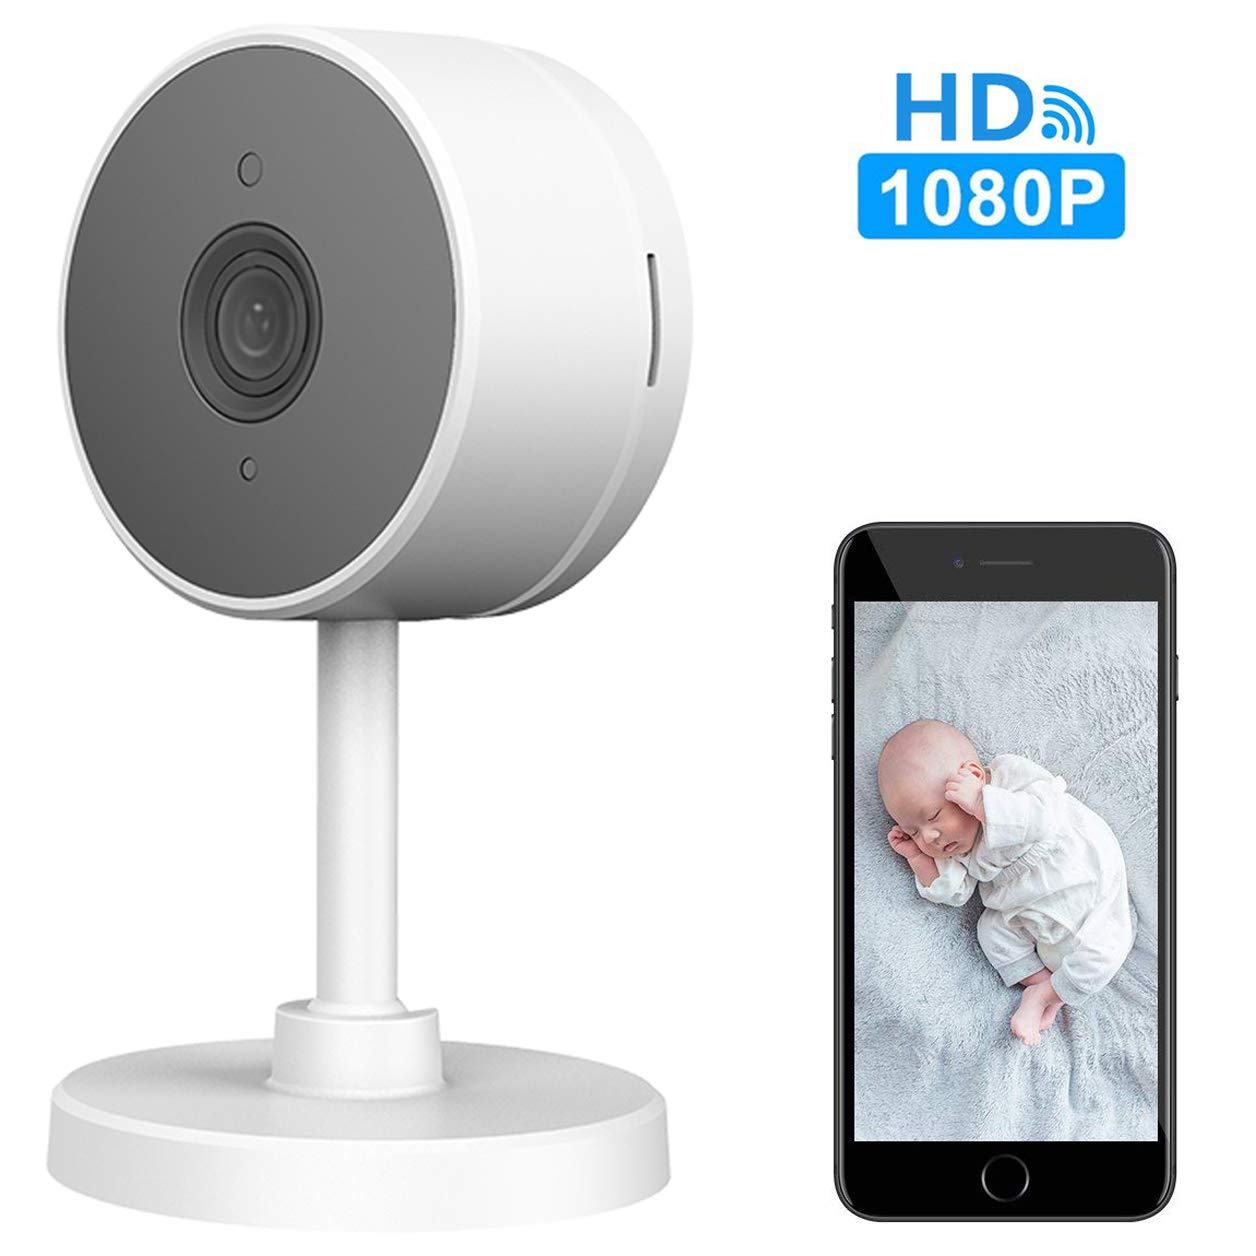 WiFi Home Security Surveillance Camera 1080P, Smart Baby Monitor Compatible with Alexa and Google Home, Motion Detection & Tracker, Night Vision